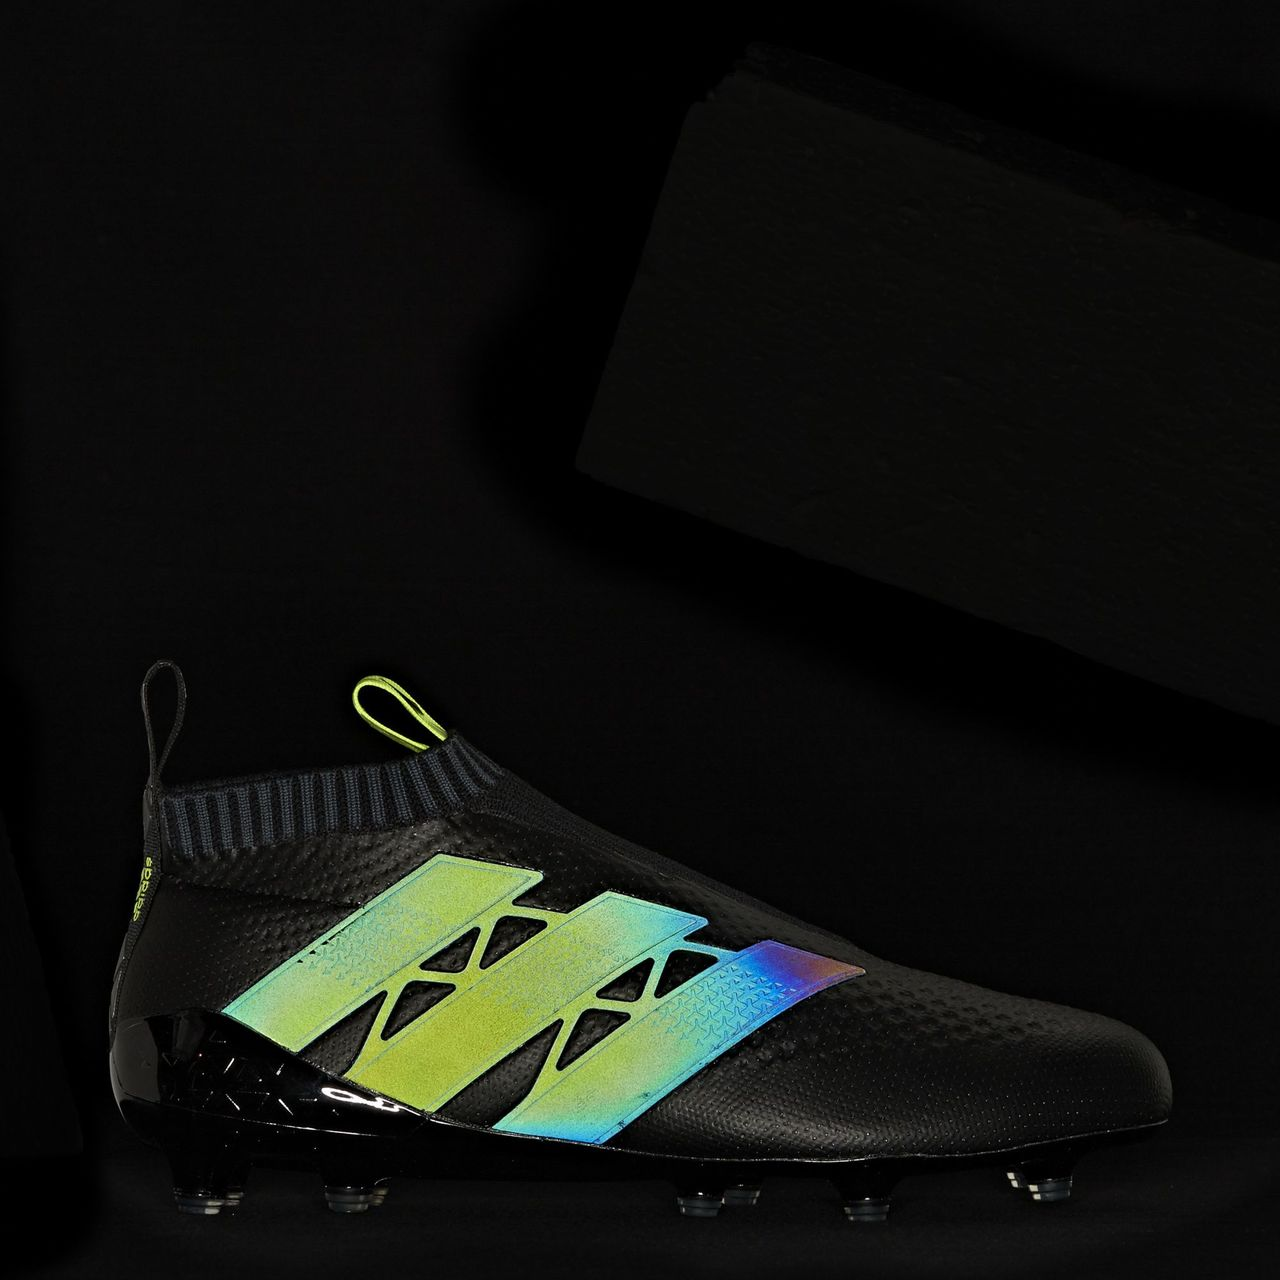 adidas ace 16 purecontrol primeknit firm ground boots. Black Bedroom Furniture Sets. Home Design Ideas